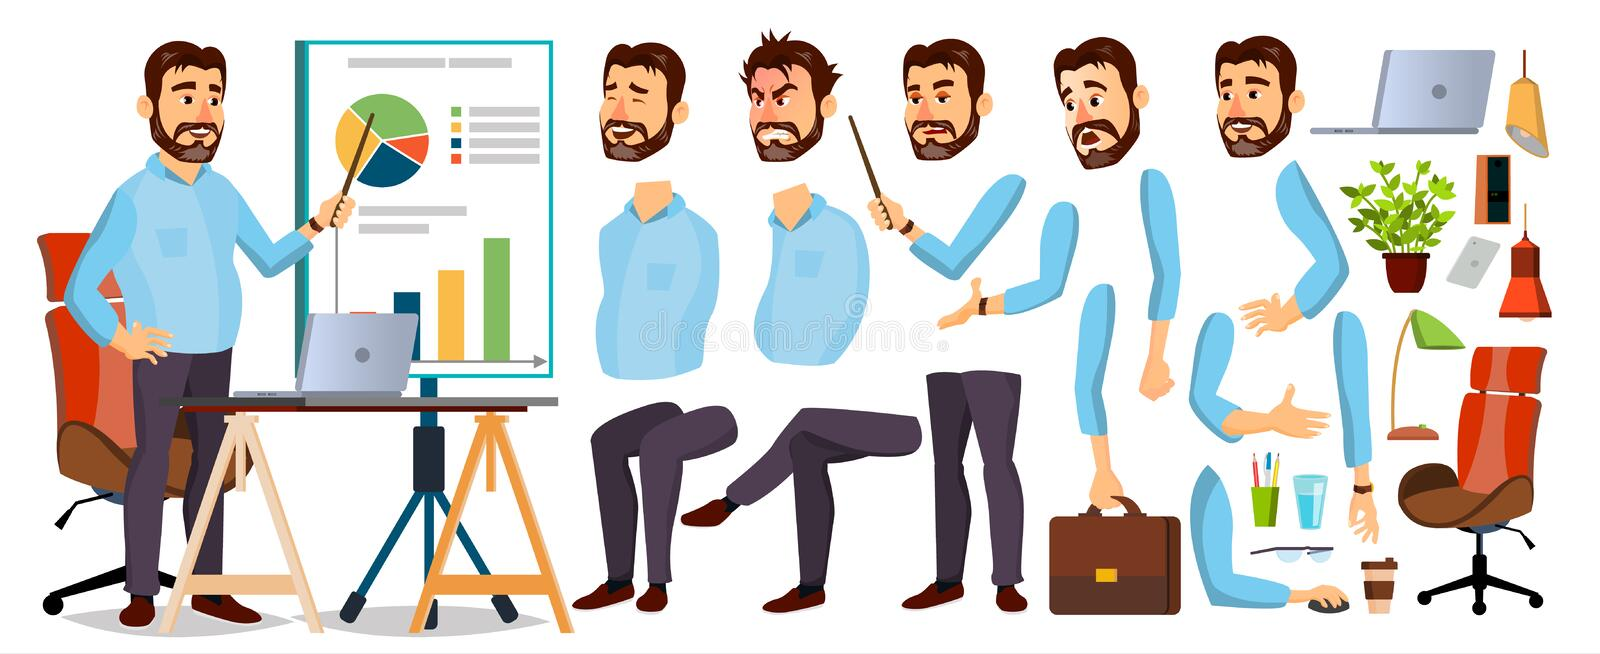 Boss Business Man Character Vector. Working Bearded CEO Male. Start Up. Modern Office Workplace. Chief Executive Officer royalty free illustration